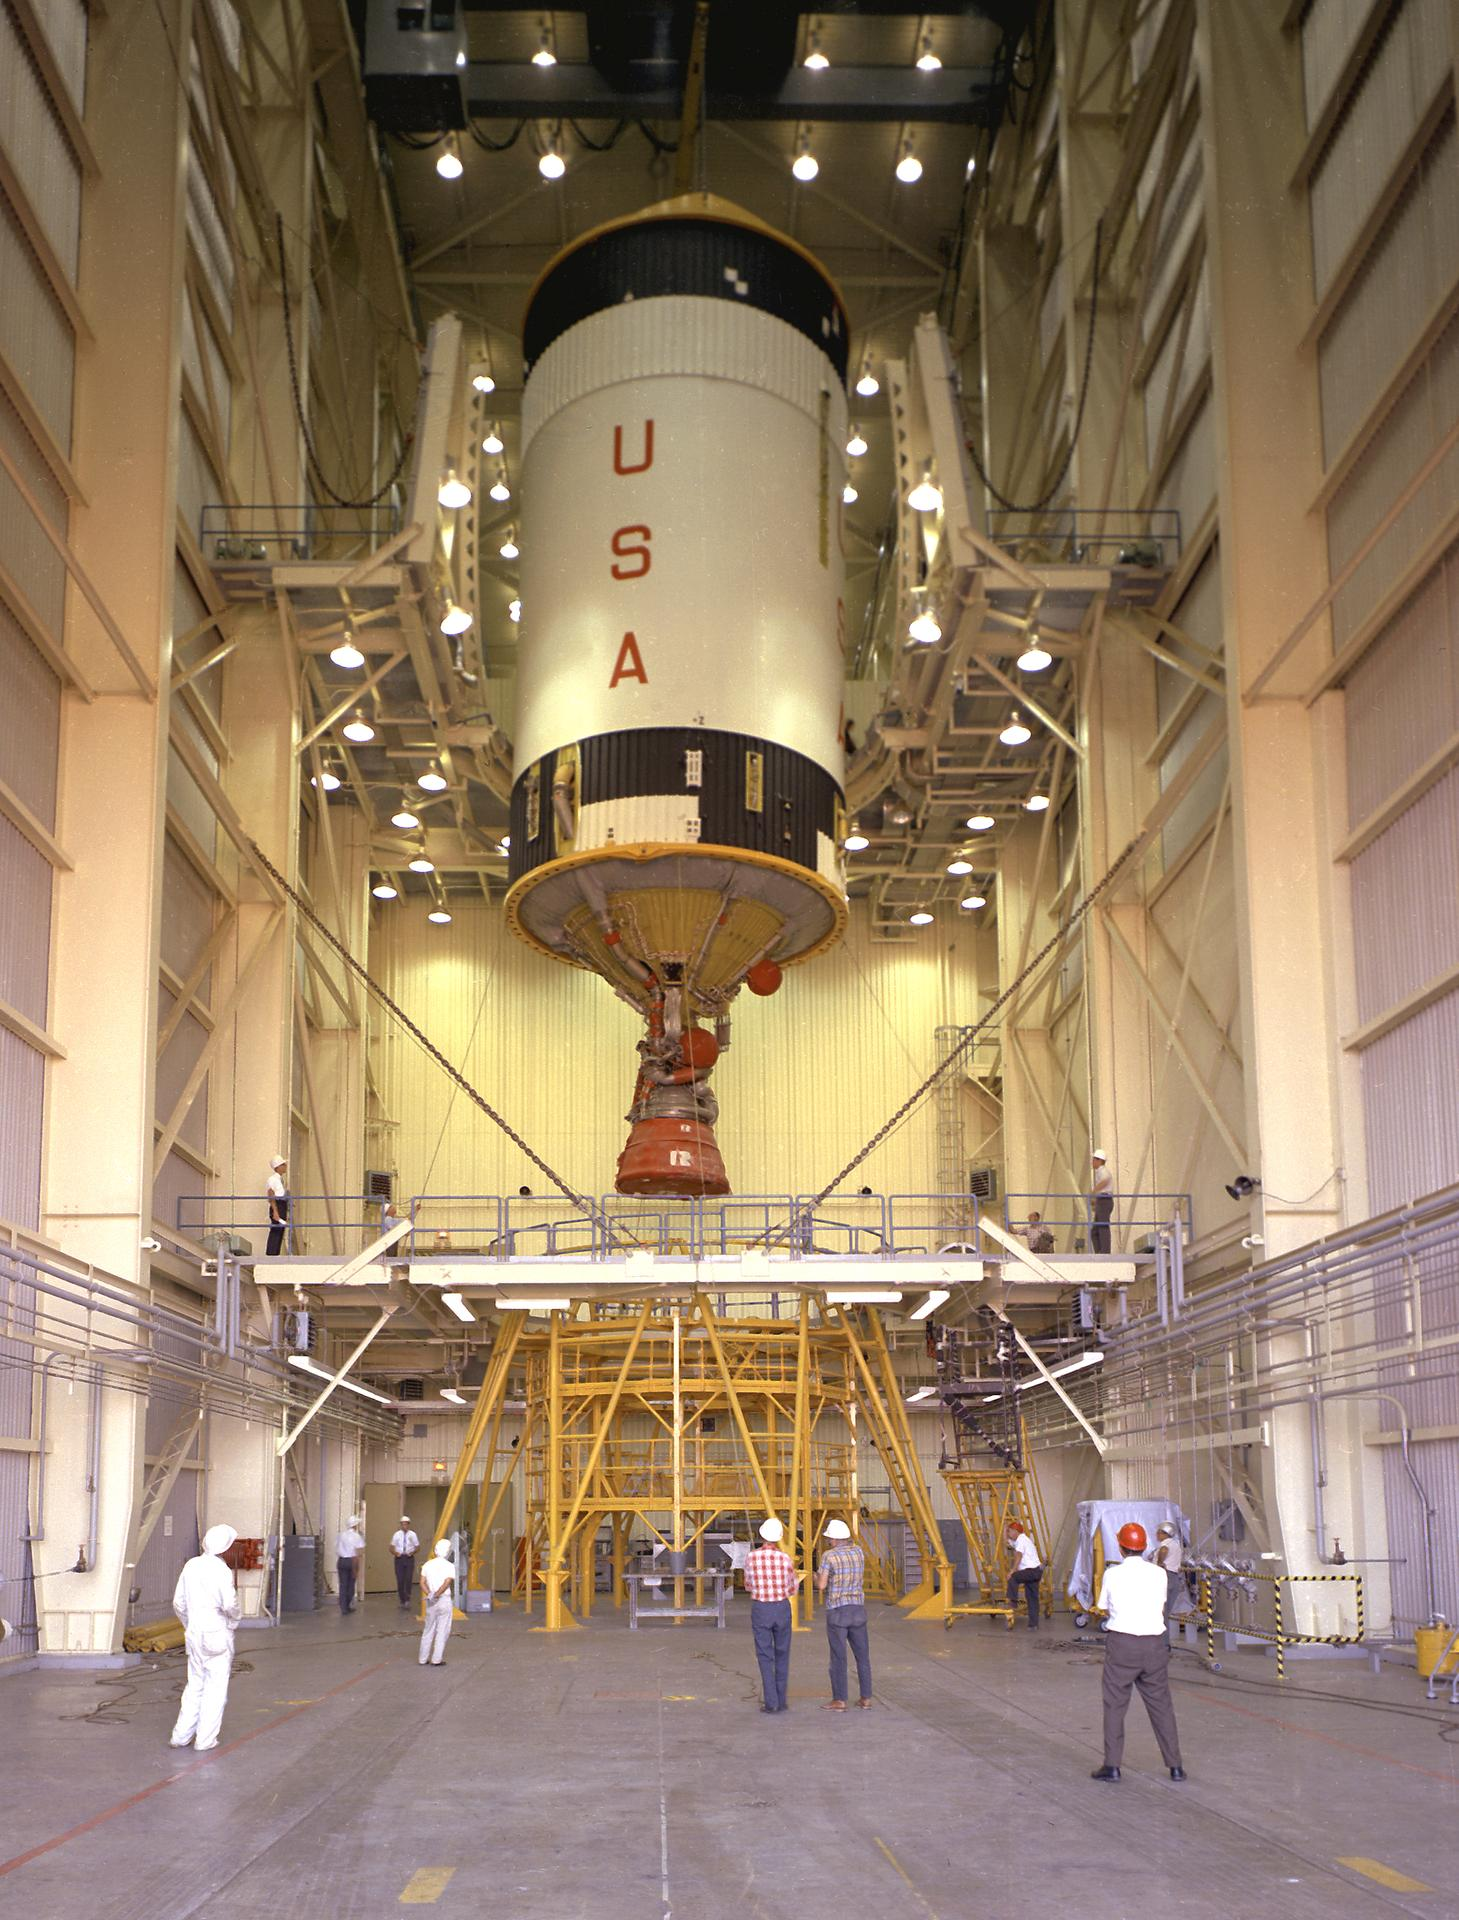 The interior of the Vertical Checkout Lab with an S-IVB. (Source: NASA)